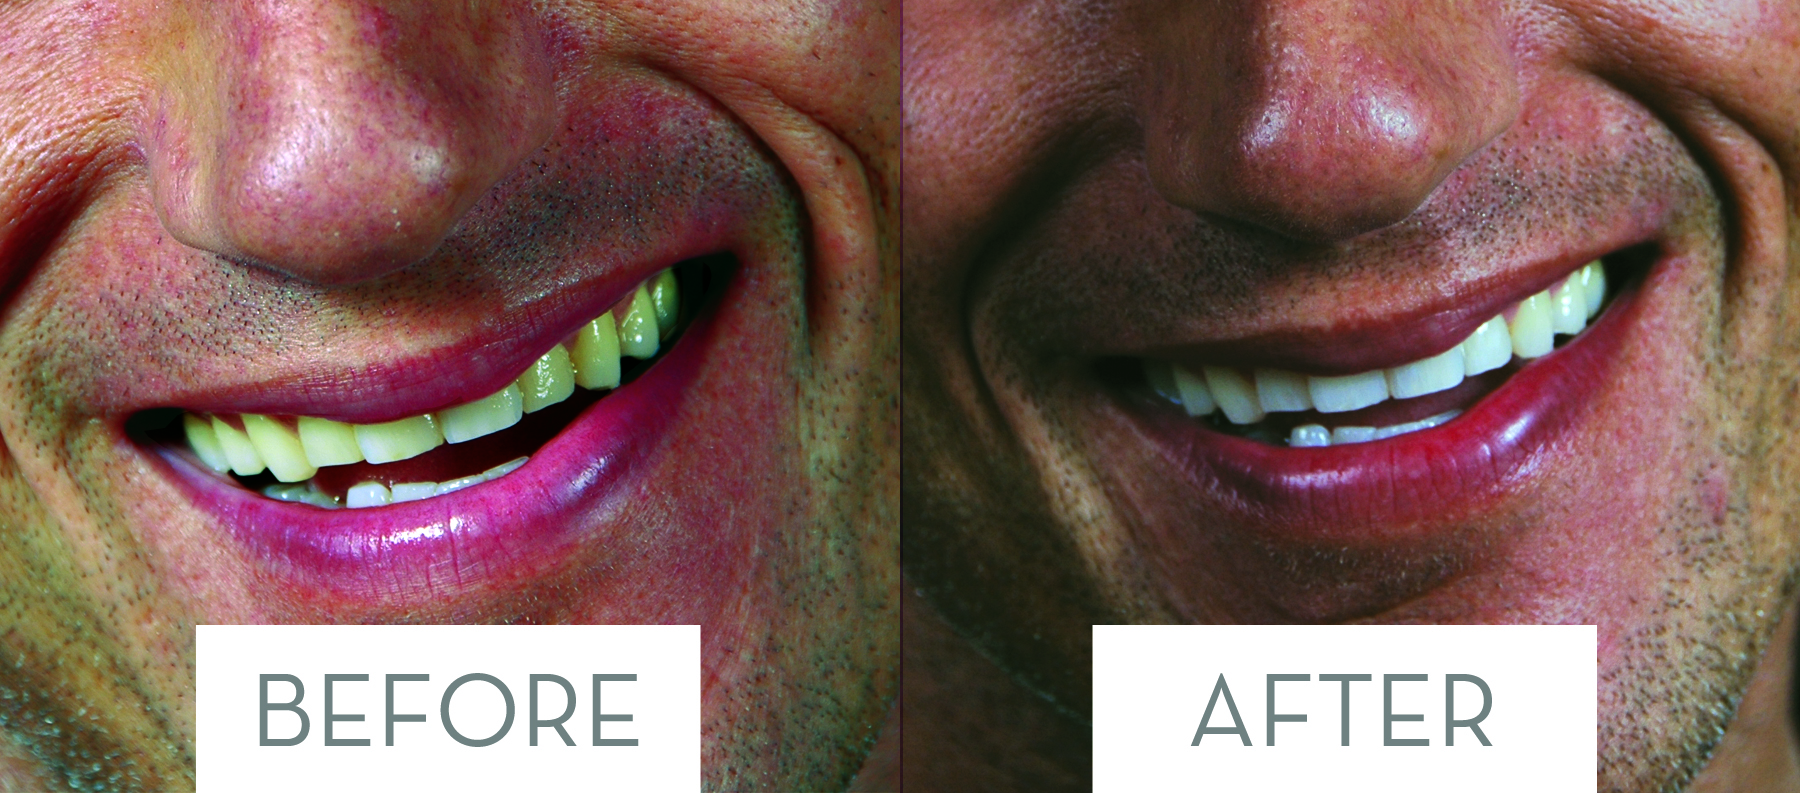 Before-After-closeup4.jpg